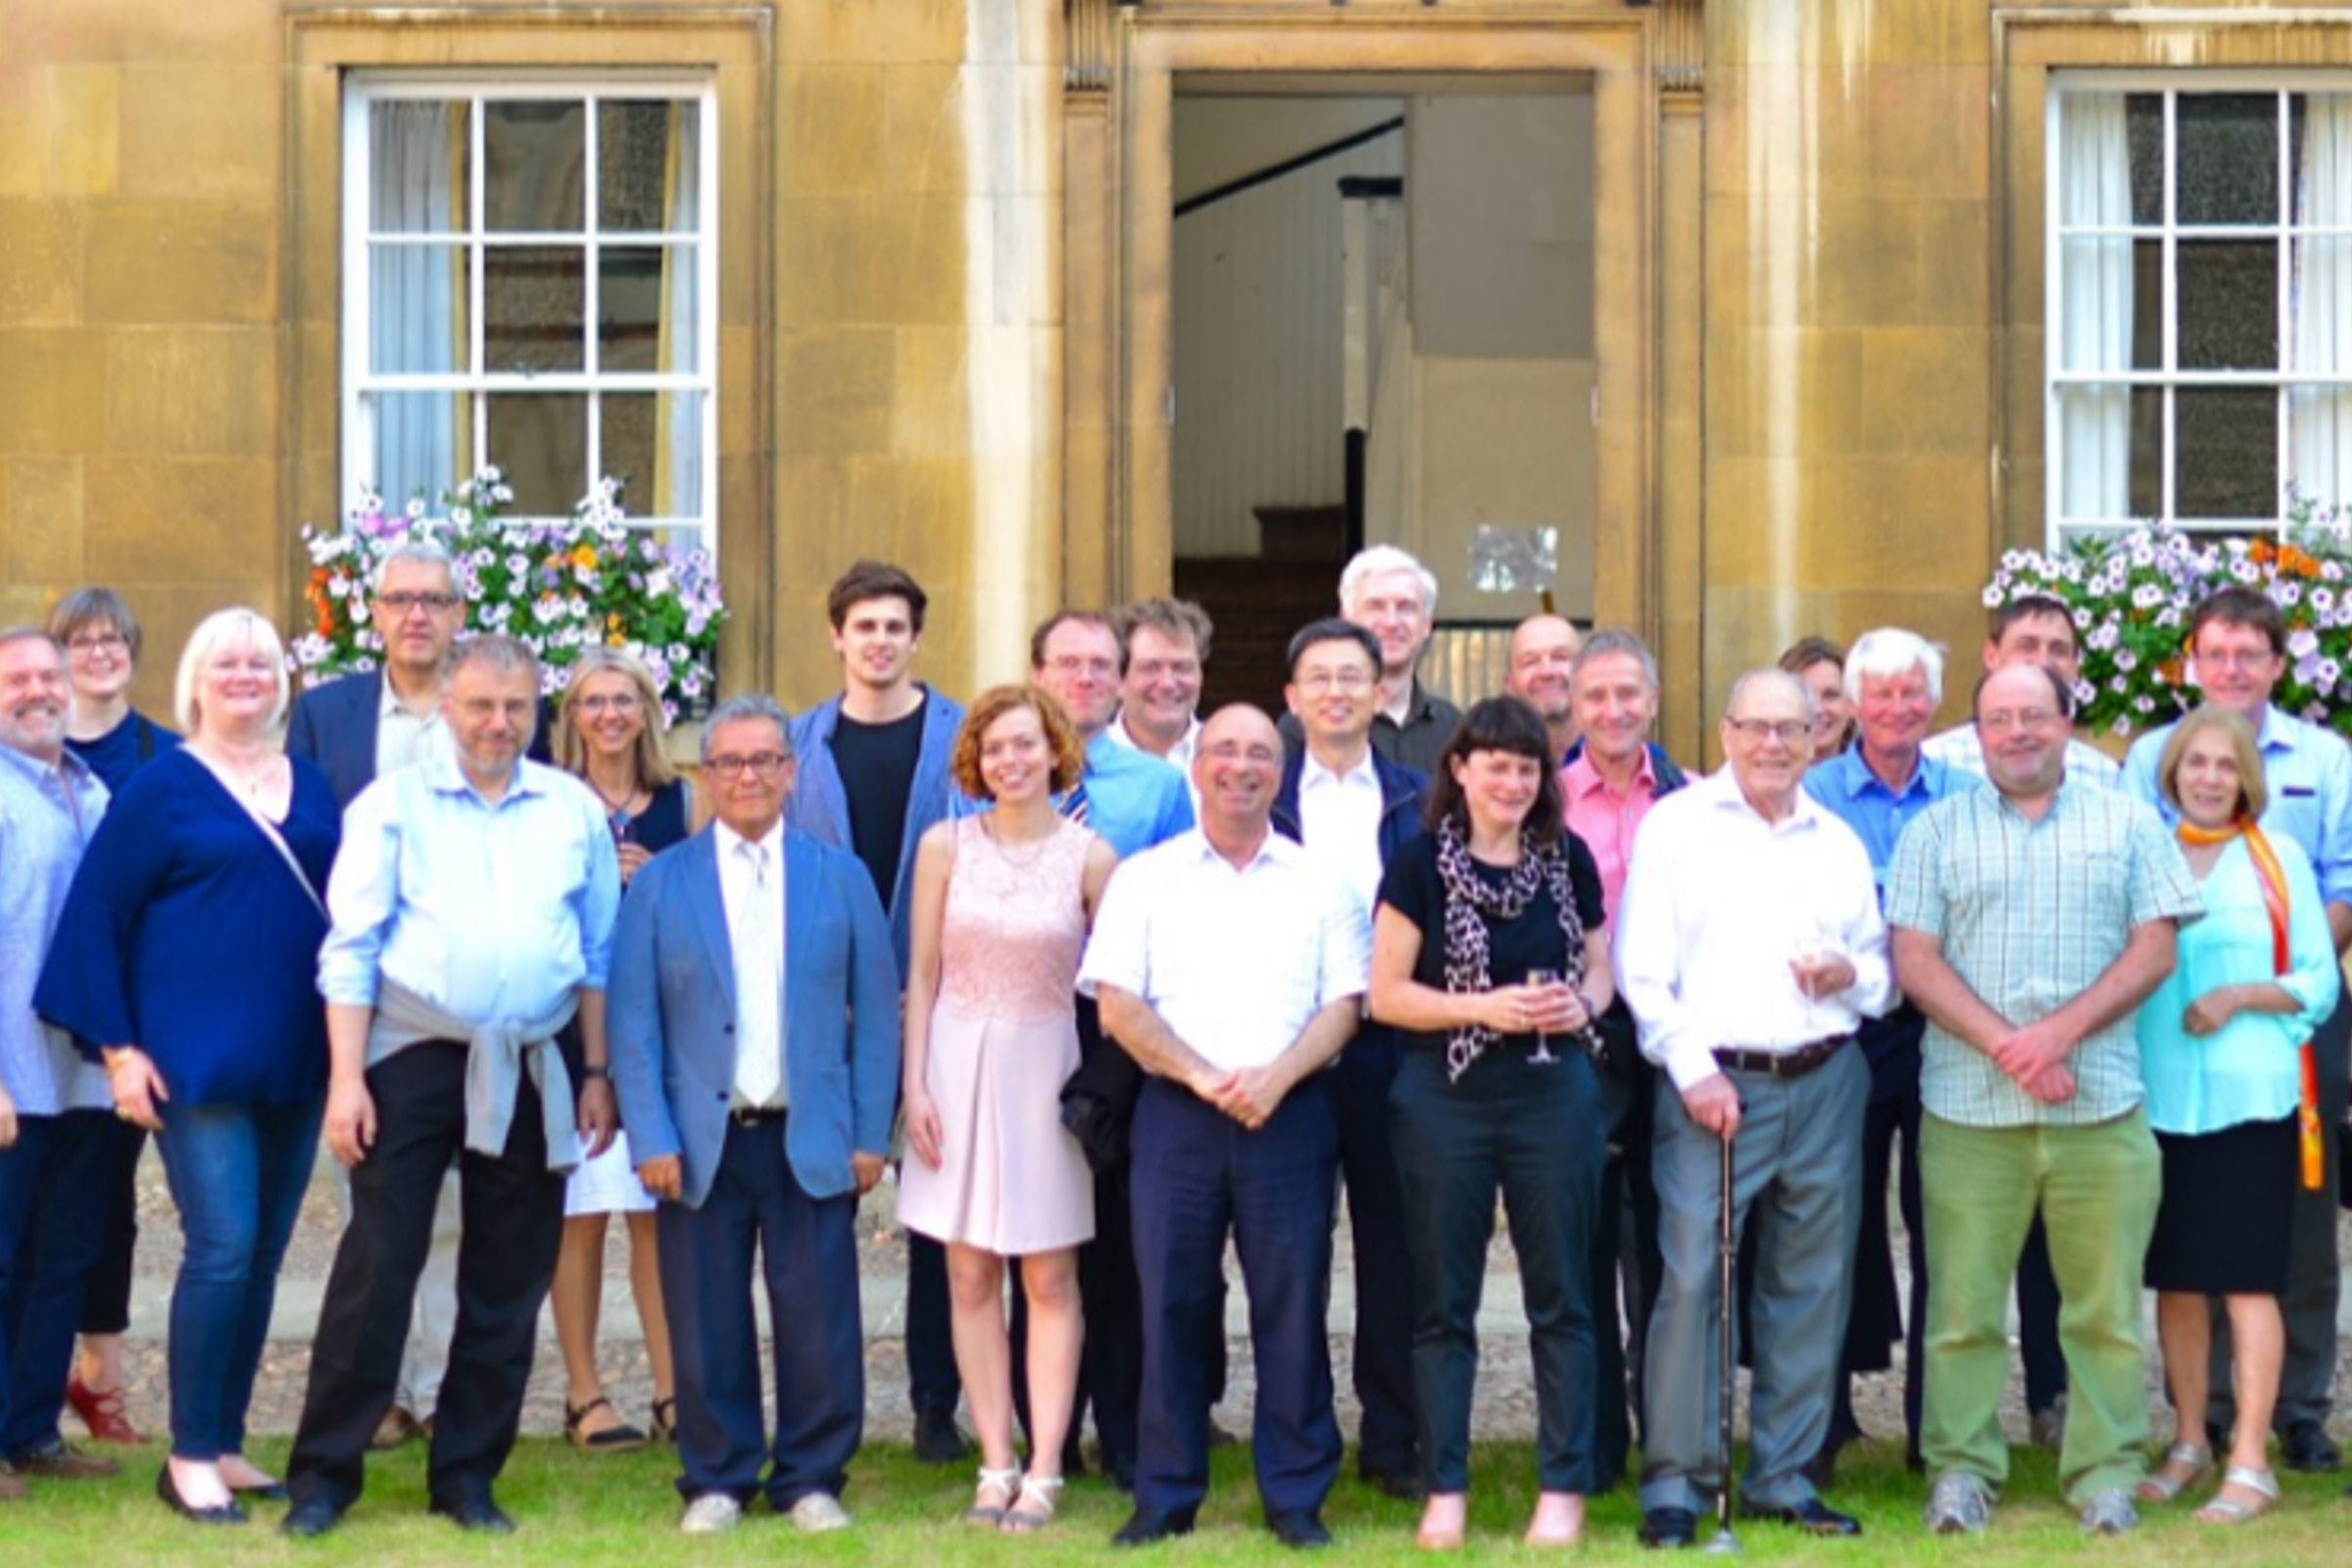 Professor Philip Roe celebrates his 80th birthday at University of Cambridge conference.